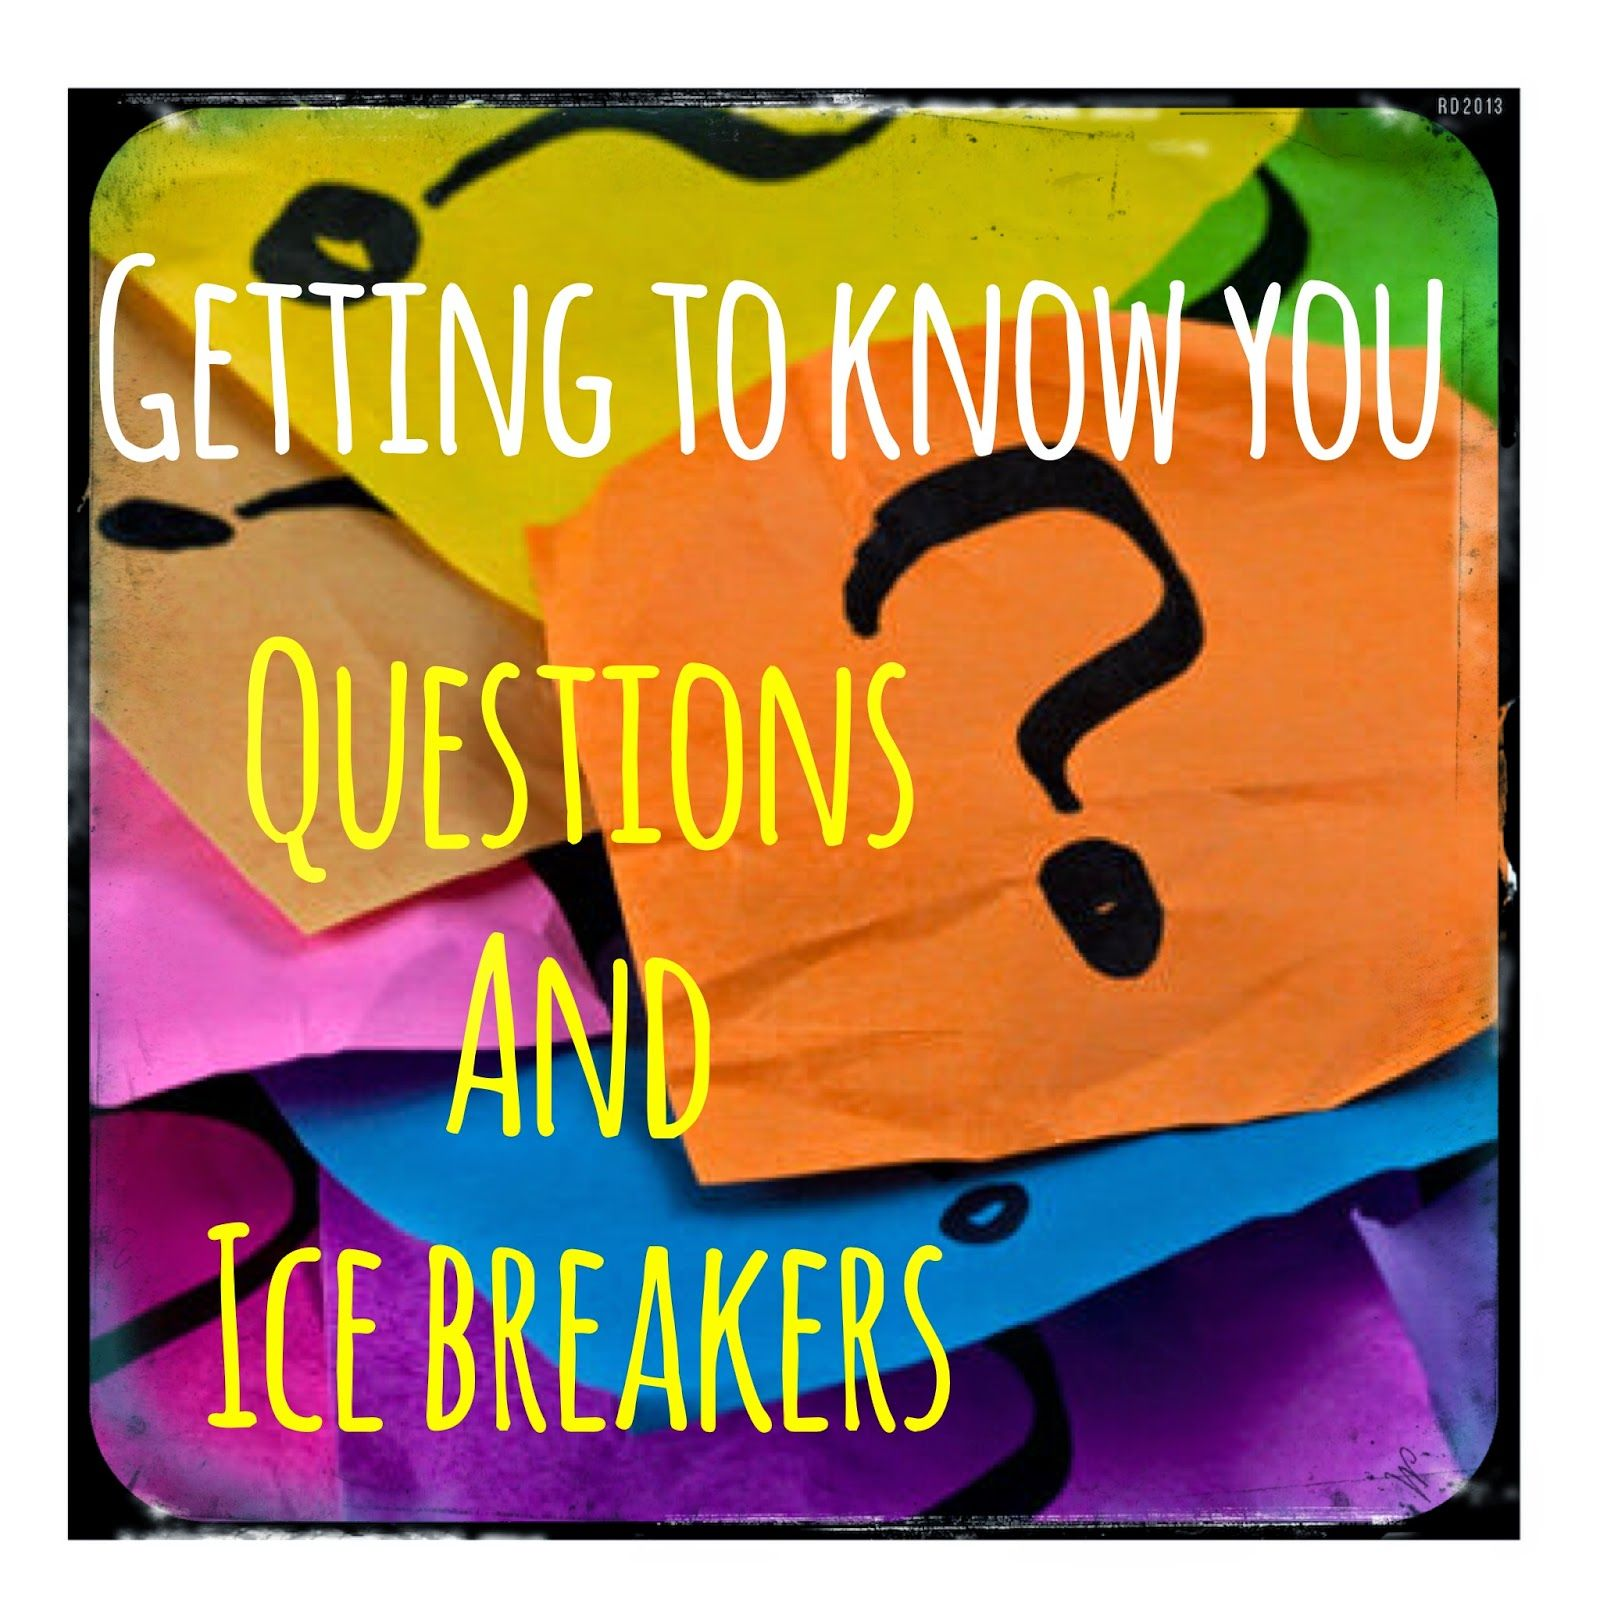 getting to know you questions and icebreakers the middle school getting to know you questions and icebreakers